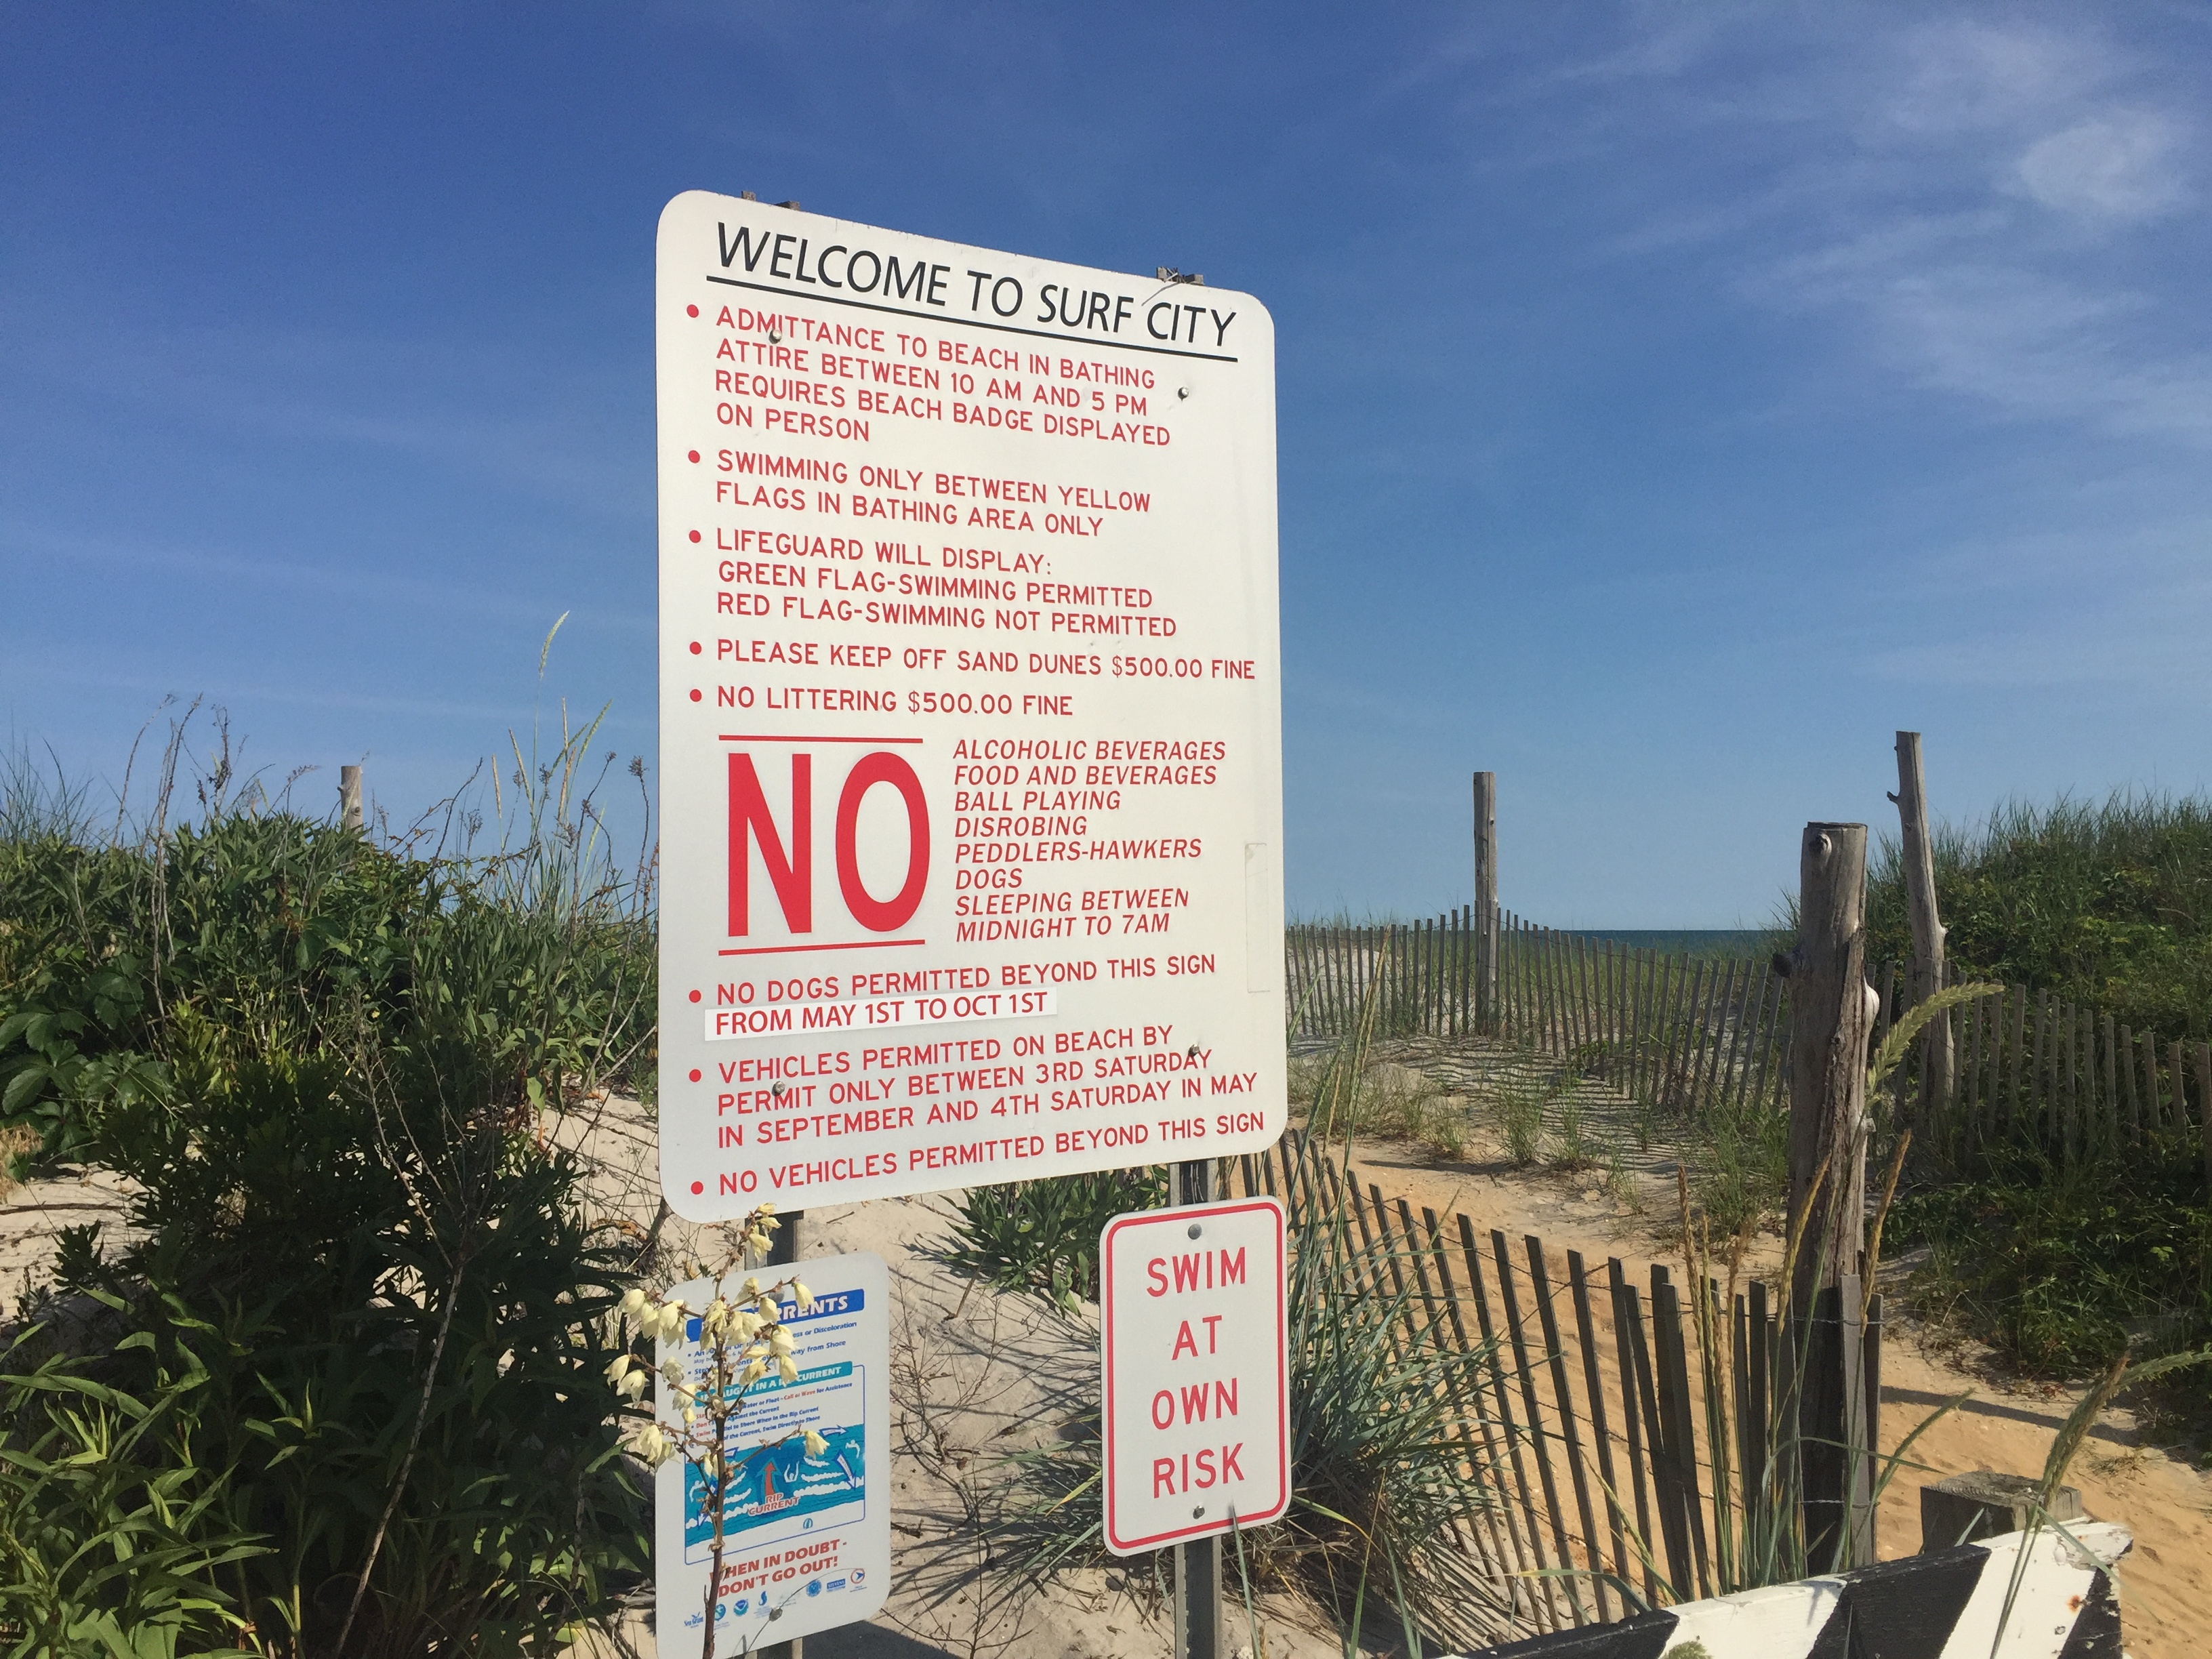 Beach rules in Surf City, NJ. (Photo: Daniel Nee)